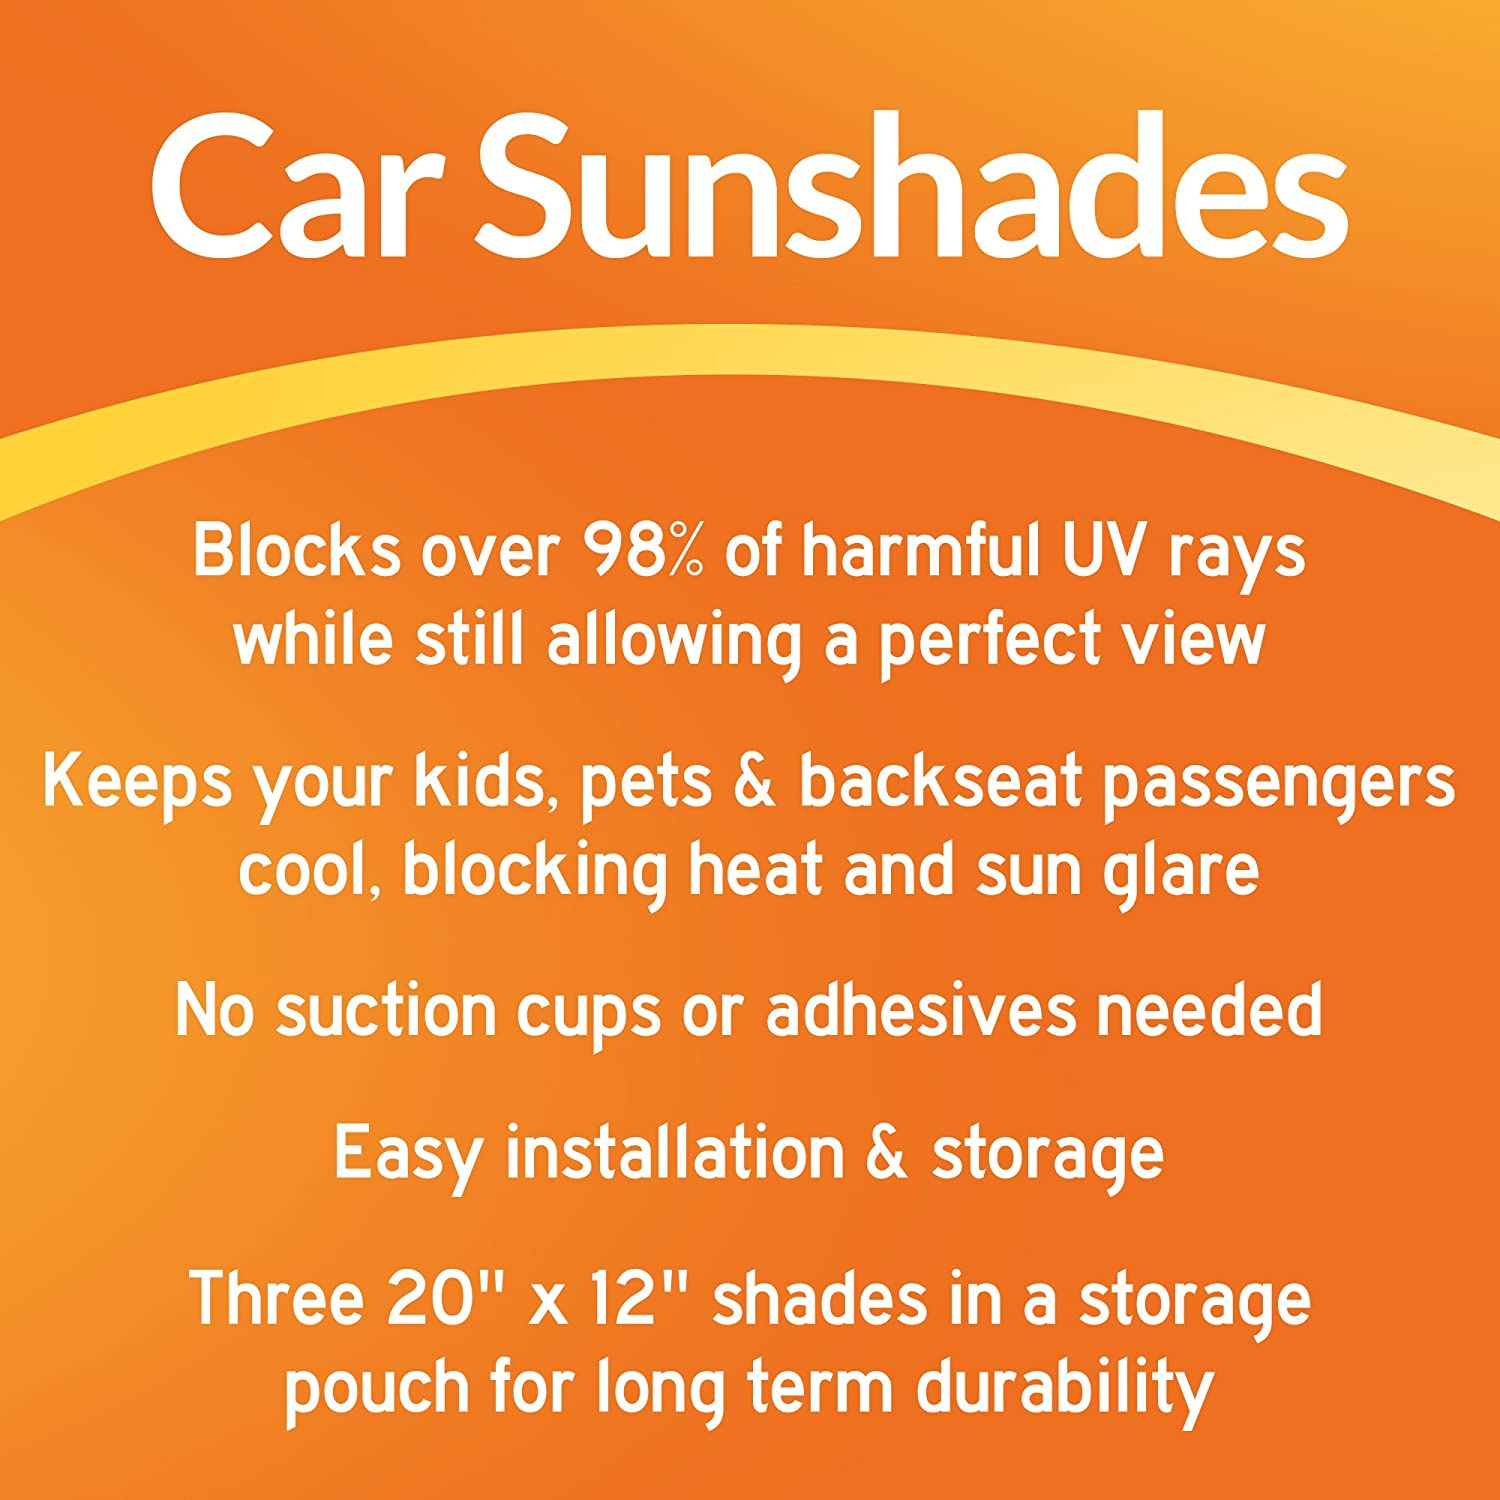 Flexible Keep Kids and Pets Cooler Heat DriveMate Car Sun Shade Side and Rear Window Protectors 3 Pack Glare Quick and Easy Install and Light-Blocking Sunshades